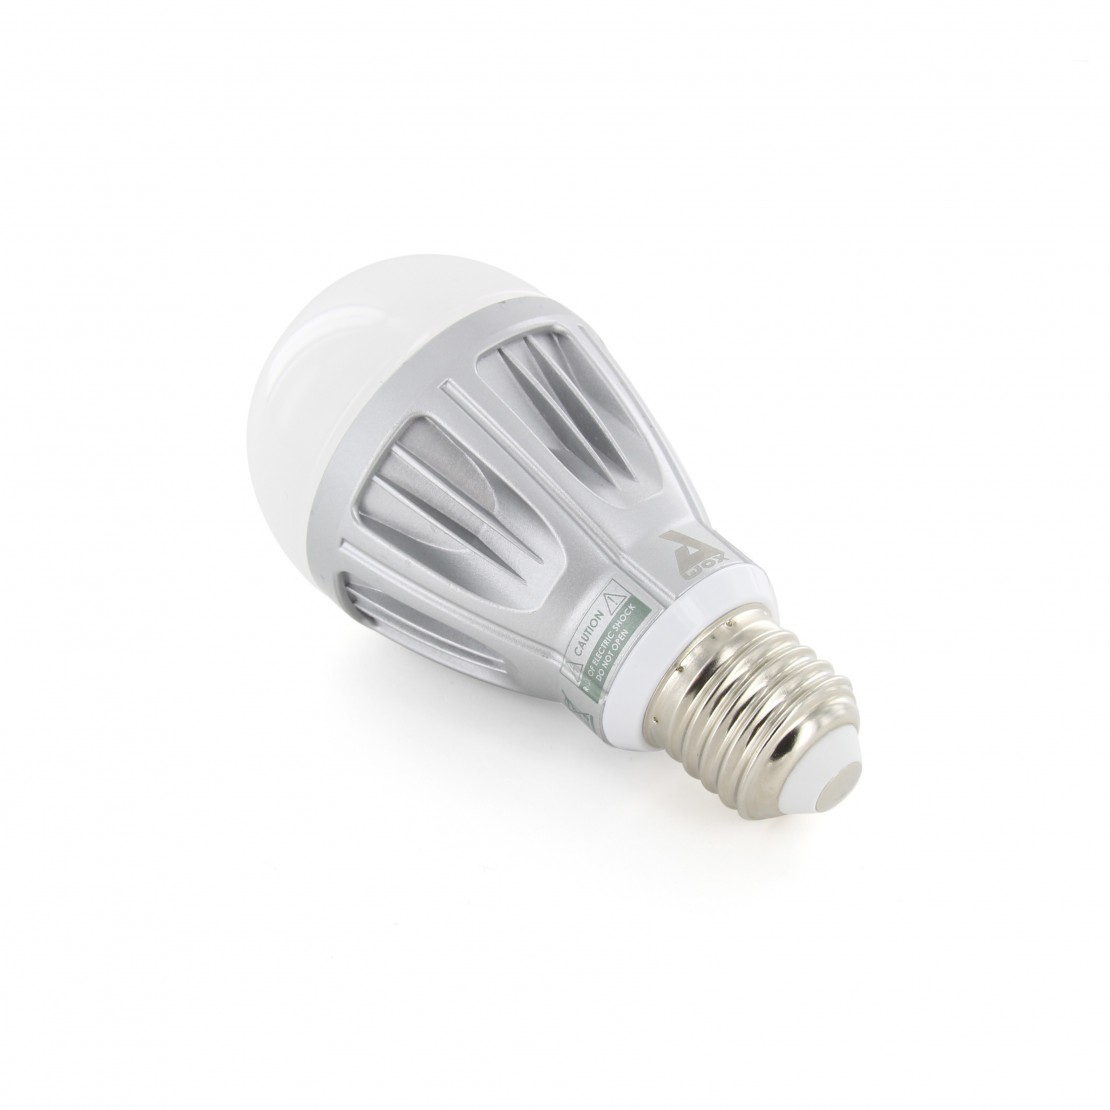 SmartLIGHT - white E27 Bluetooth connected bulb